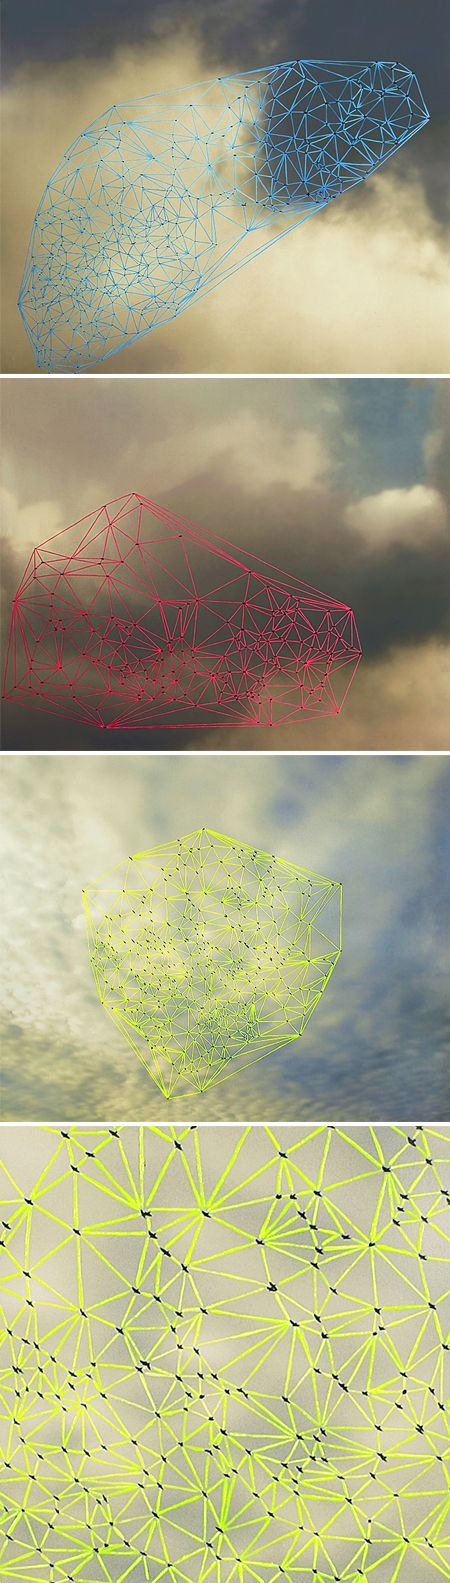 catherine ulitsky - tiny birds in flight, creating massive geometric objects. <3Geometric Object, Tiny Birds, Geometric Shape, Catherine Zeta-Jon, Create Massive, Art Attack, Catherine Ulitski, Birds In Flight, Massive Geometric